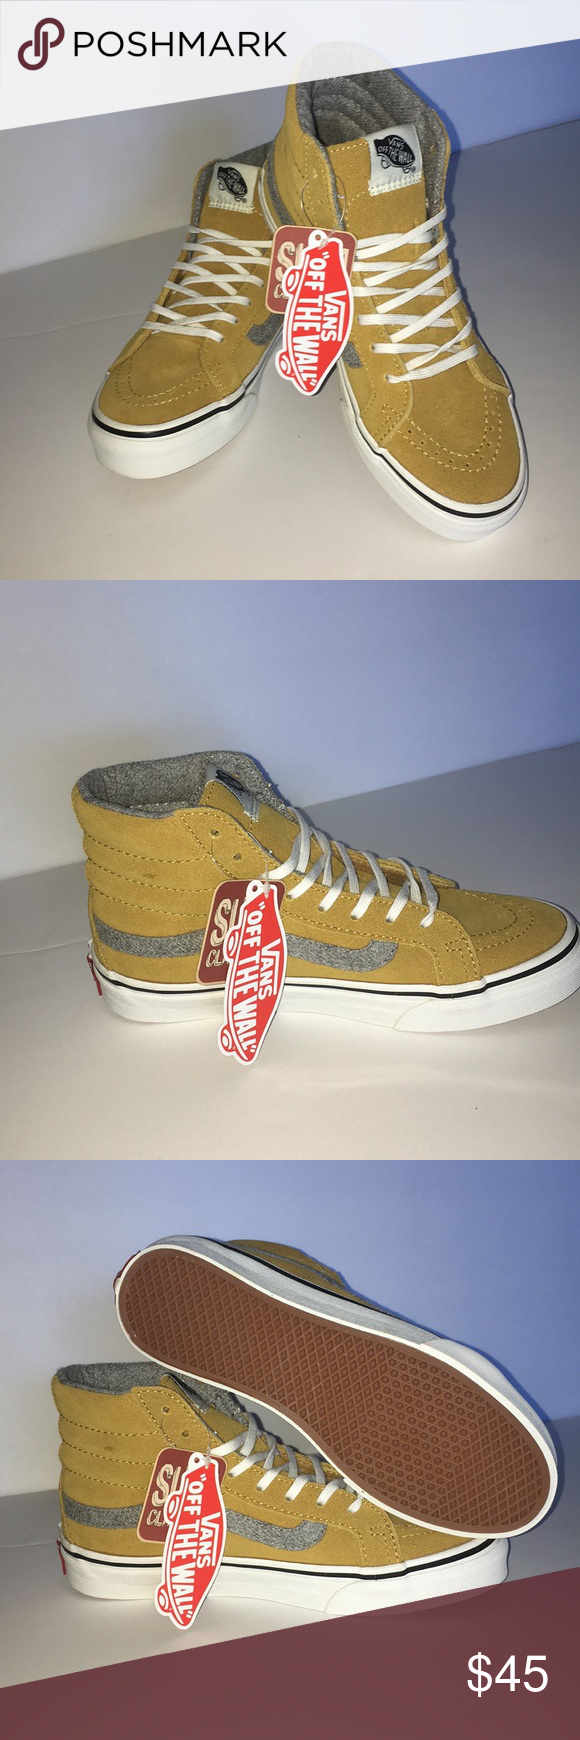 eb5449d5ed Vans SK8-Hi Slim (Vintage Suede) Brand new in box with original tags! Vans  Sk8-Hi Slim (Vintage Suede) Amber Gold Size 3.5 Men